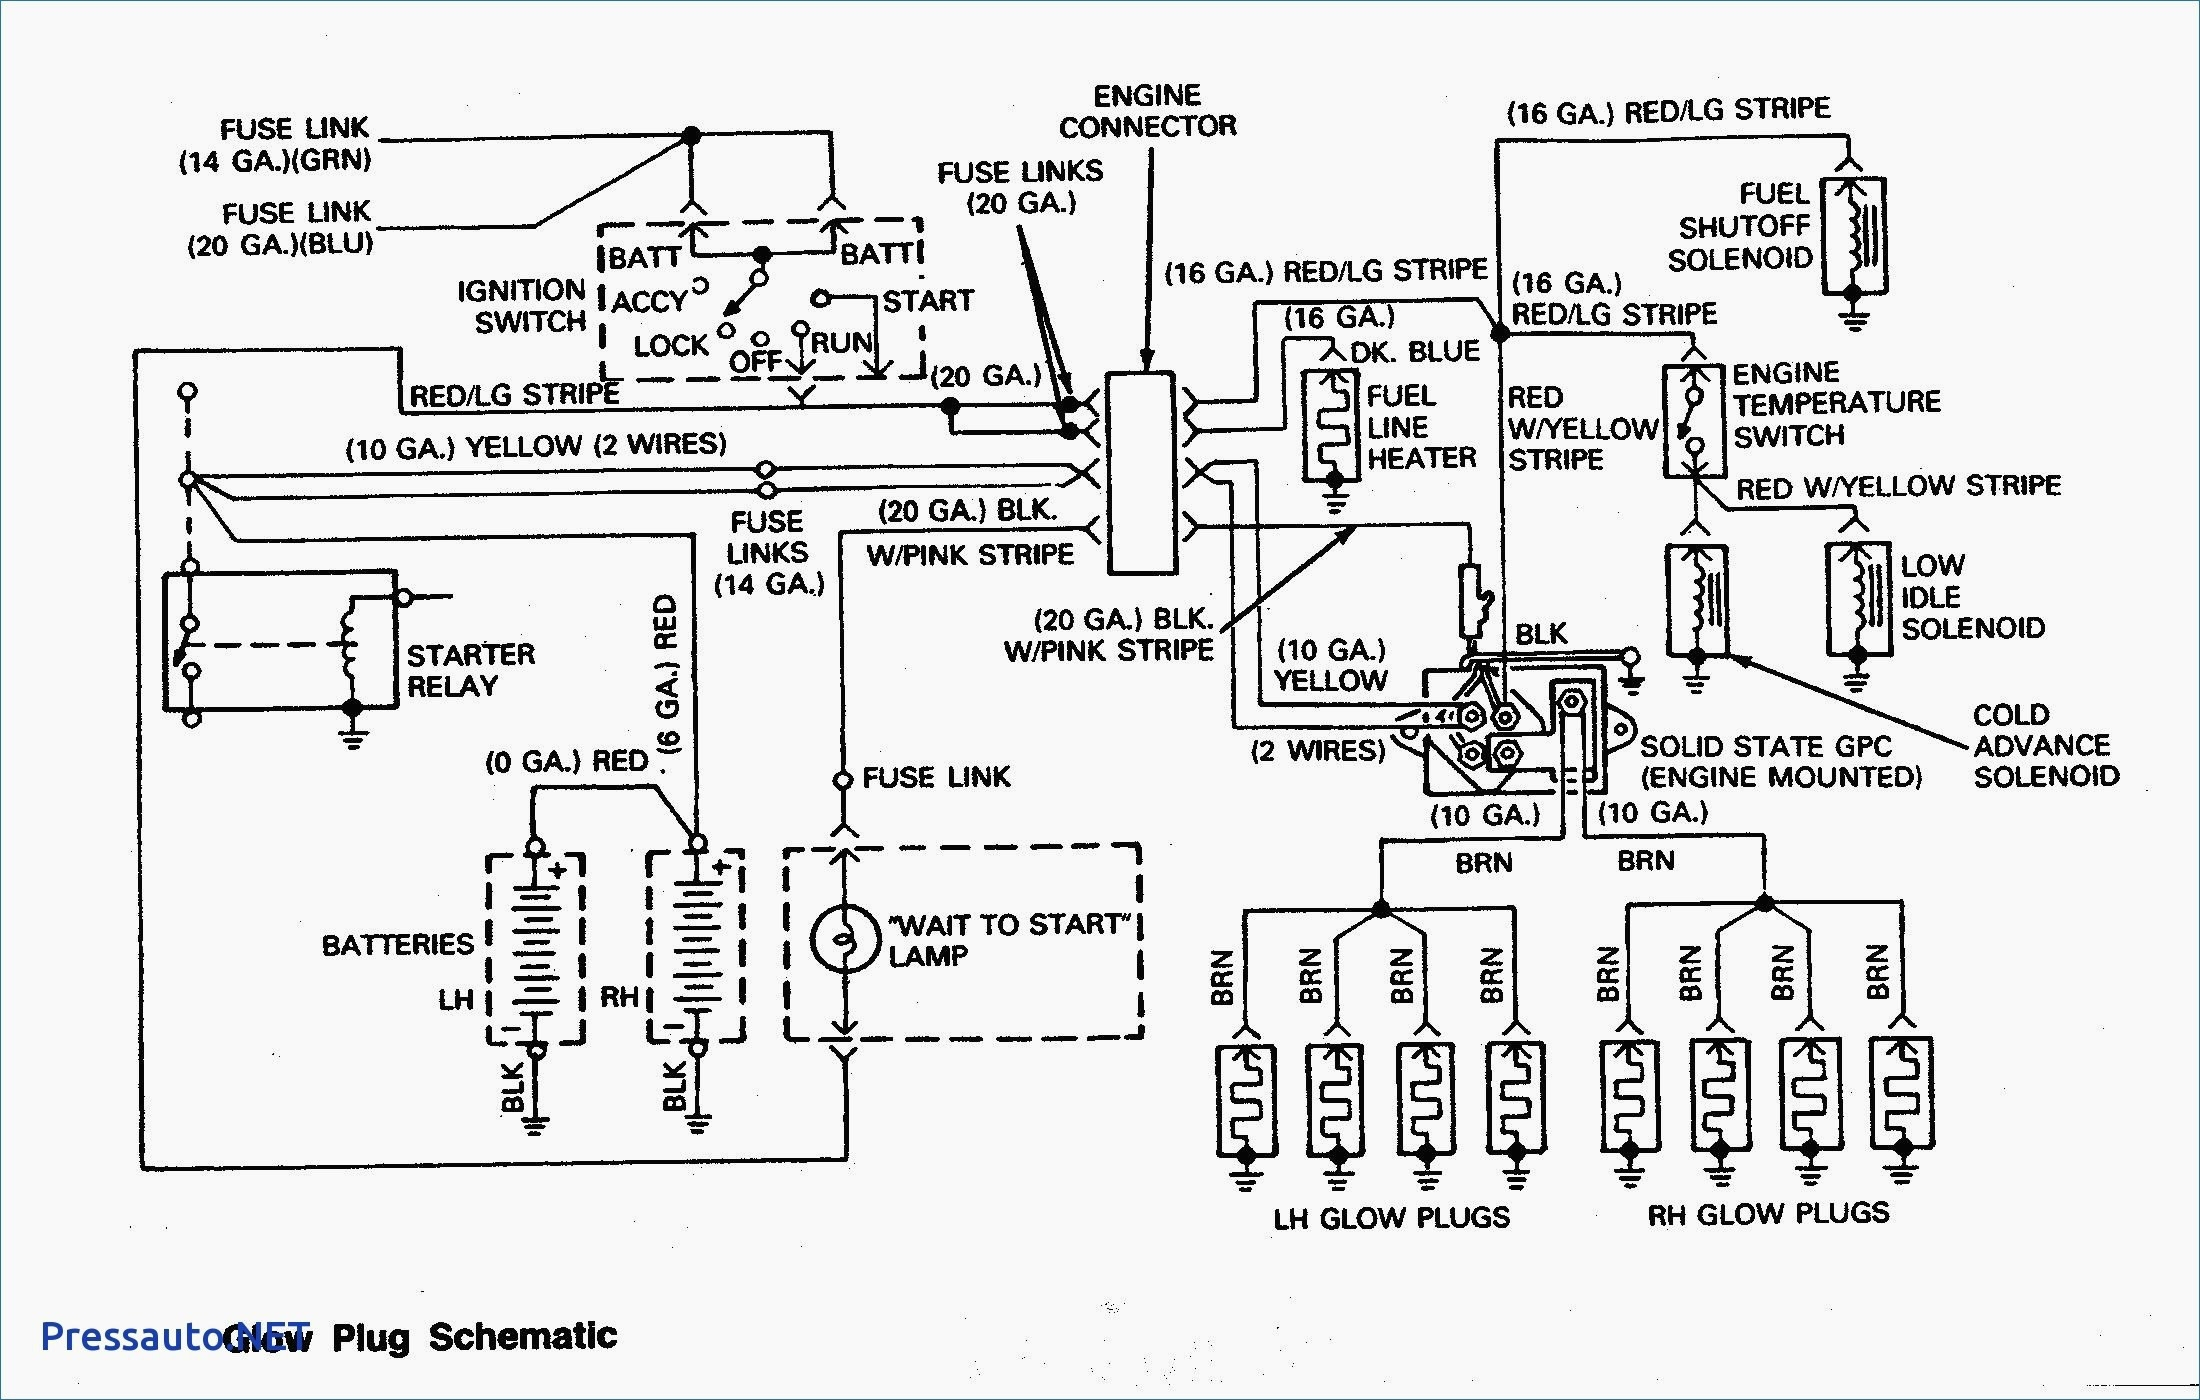 7 3 powerstroke engine wiring diagram 99 jeep cherokee stereo 2001 schematic diagram7 glow plug relay simple